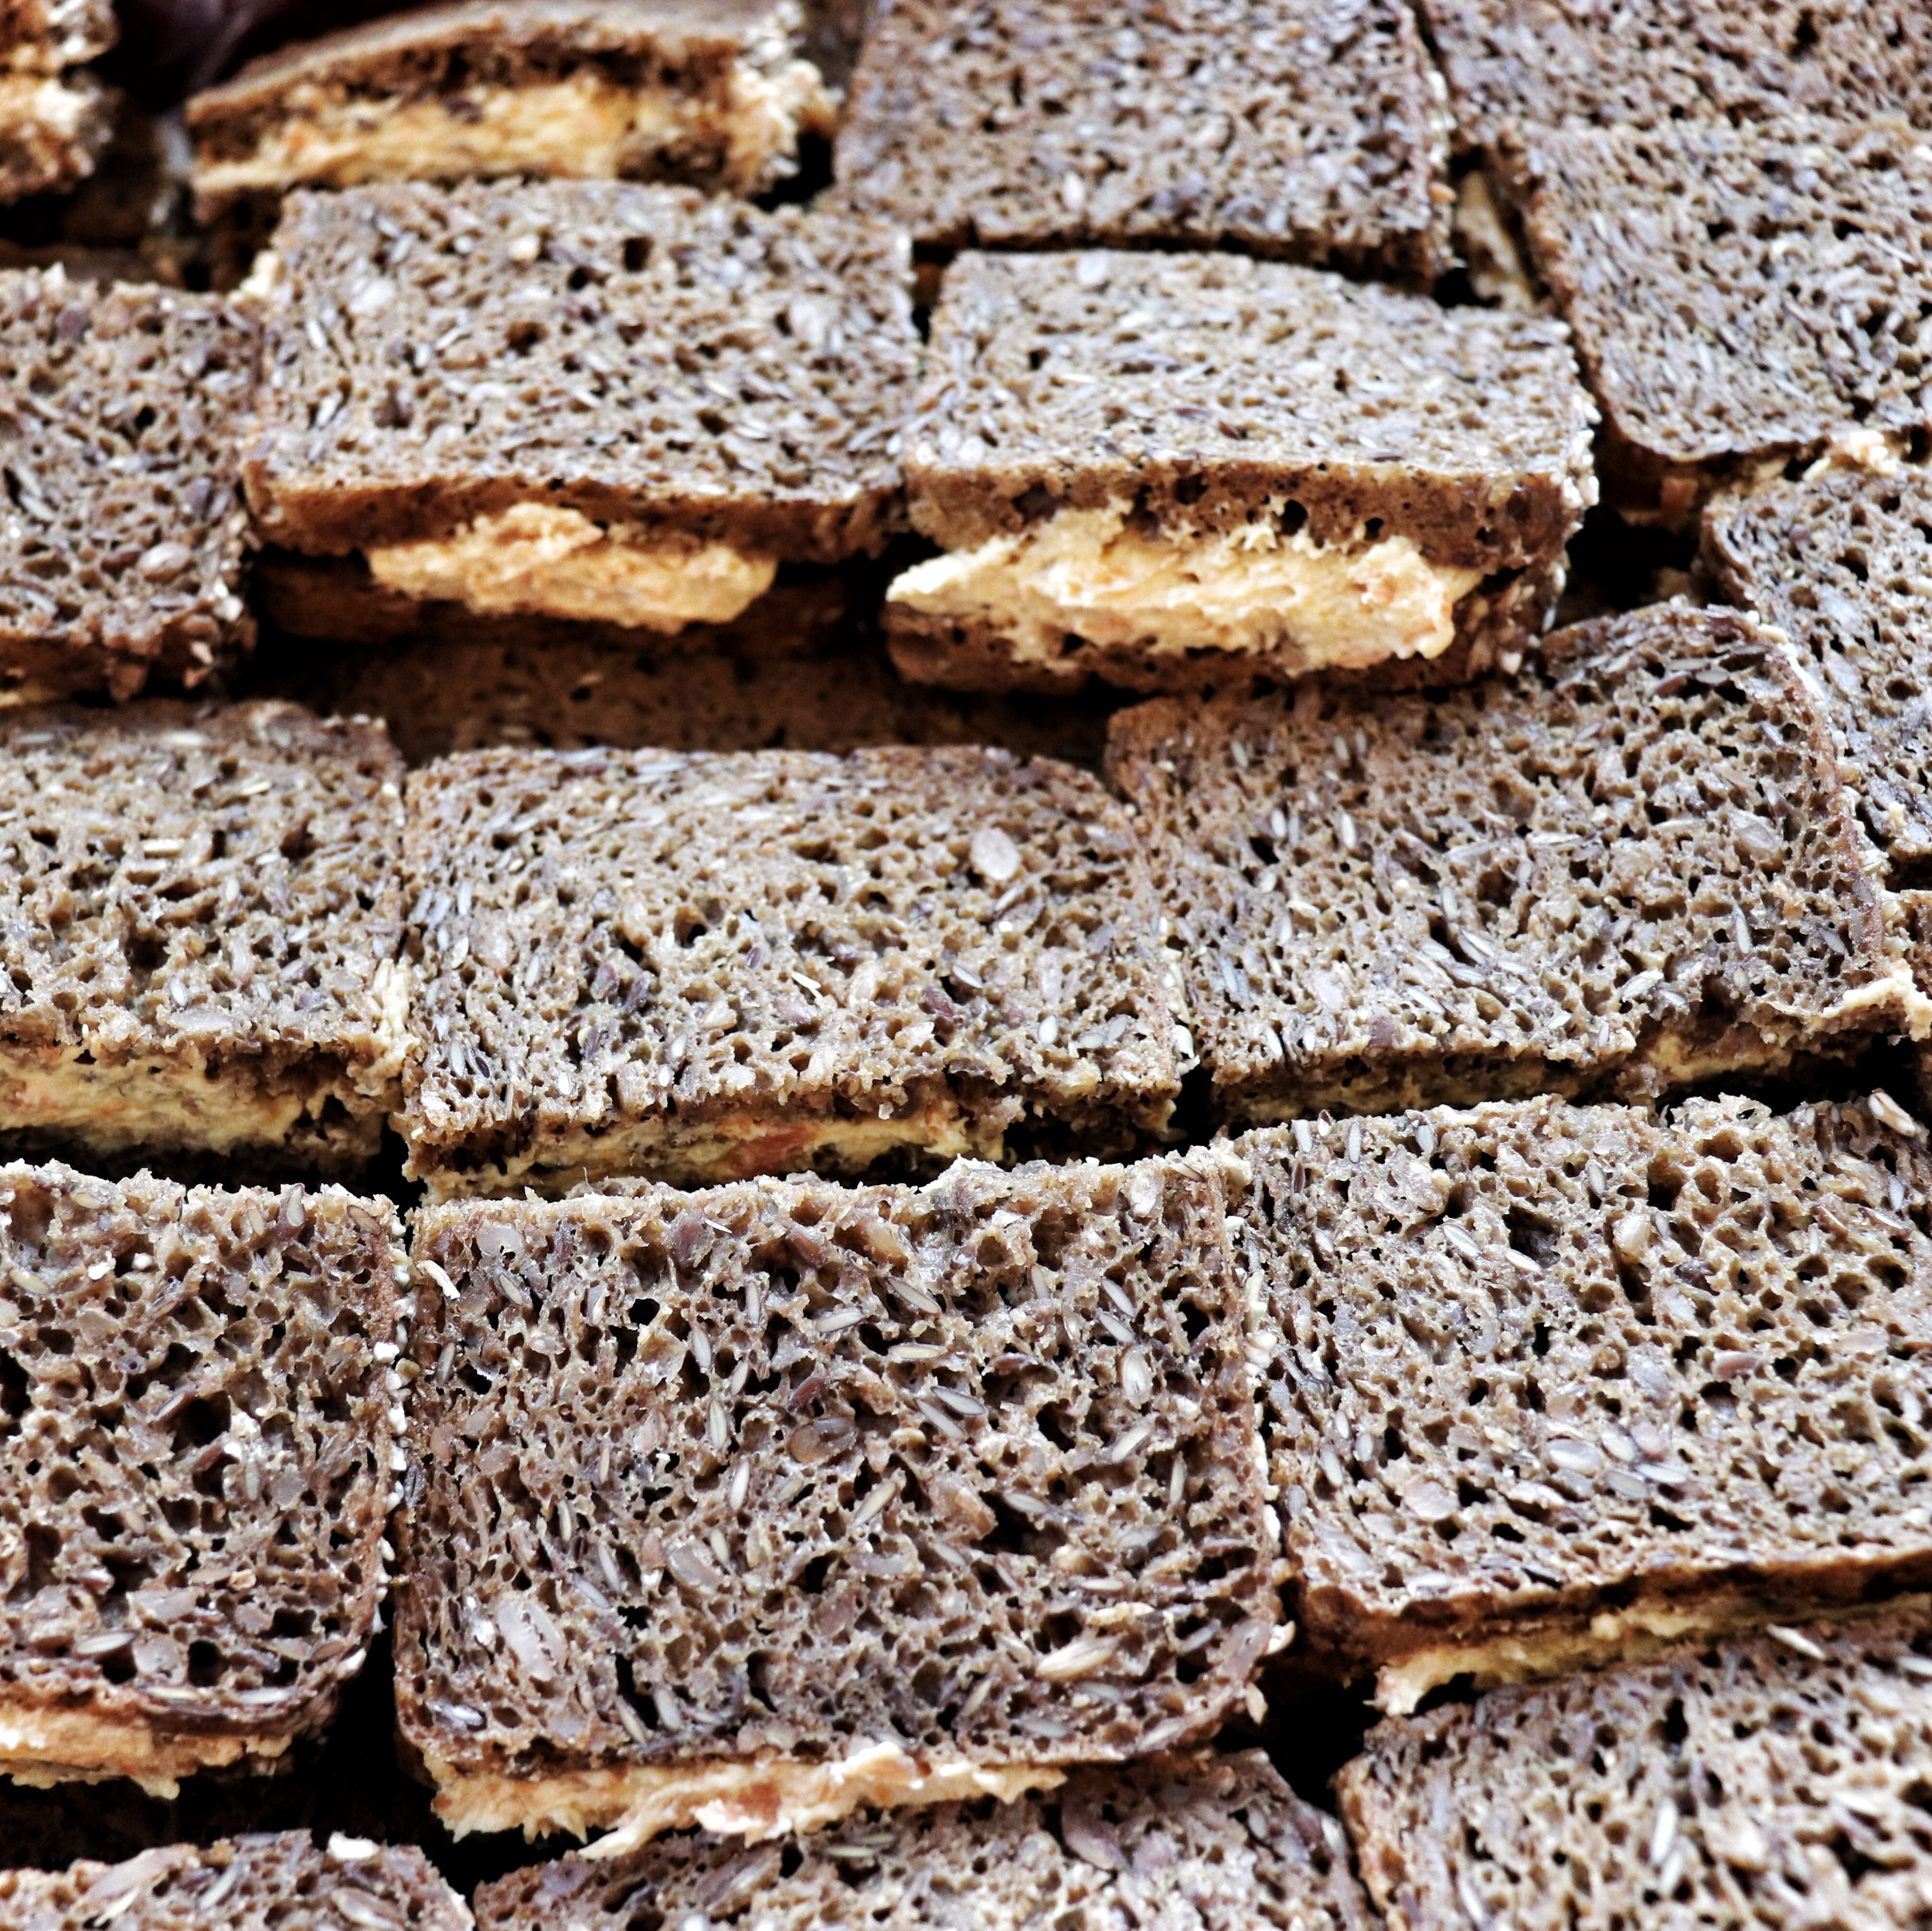 The Danes love their rye bread!